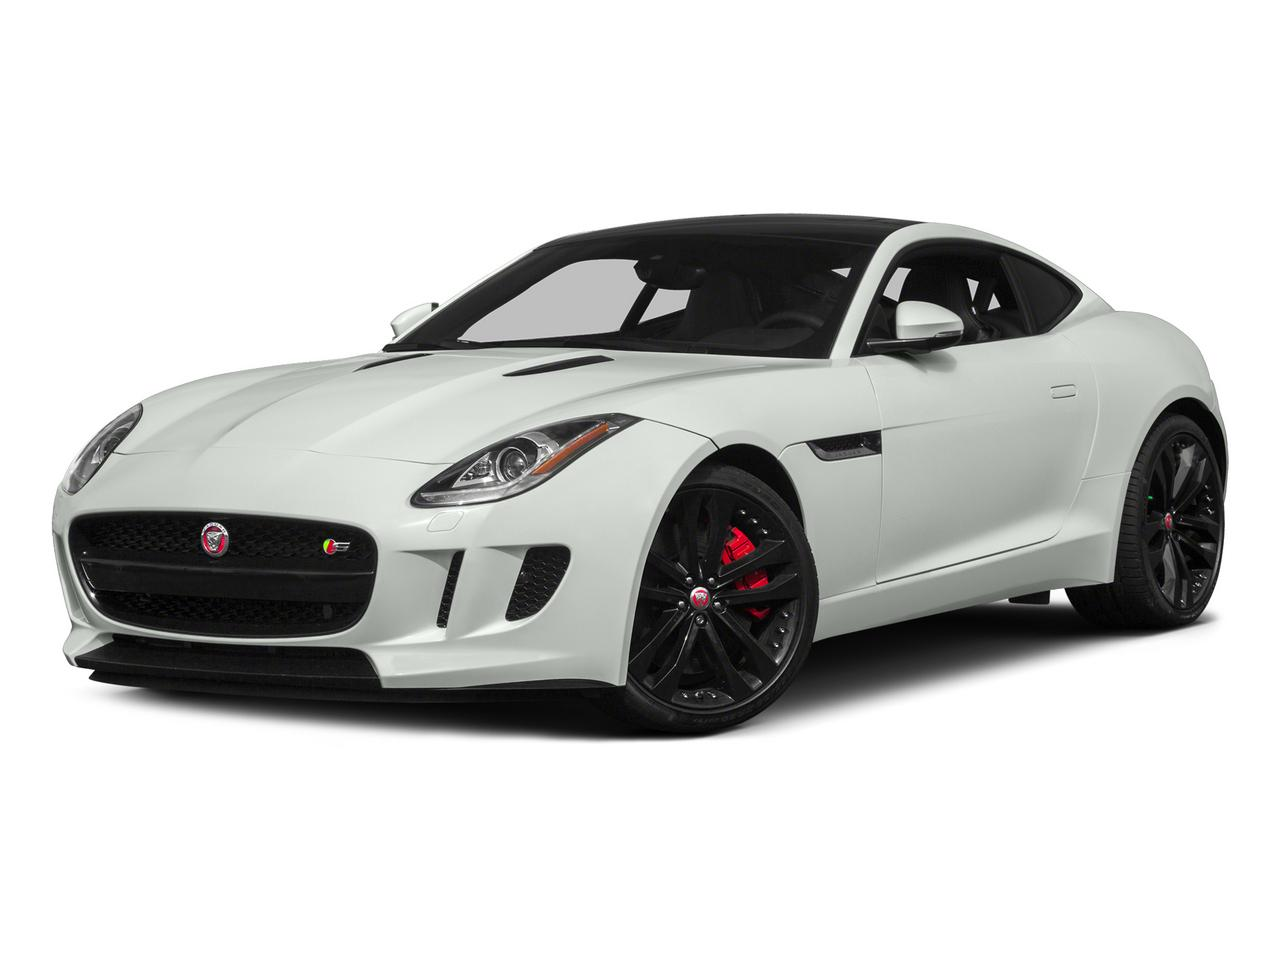 2015 Jaguar F-TYPE Vehicle Photo in Melbourne, FL 32901